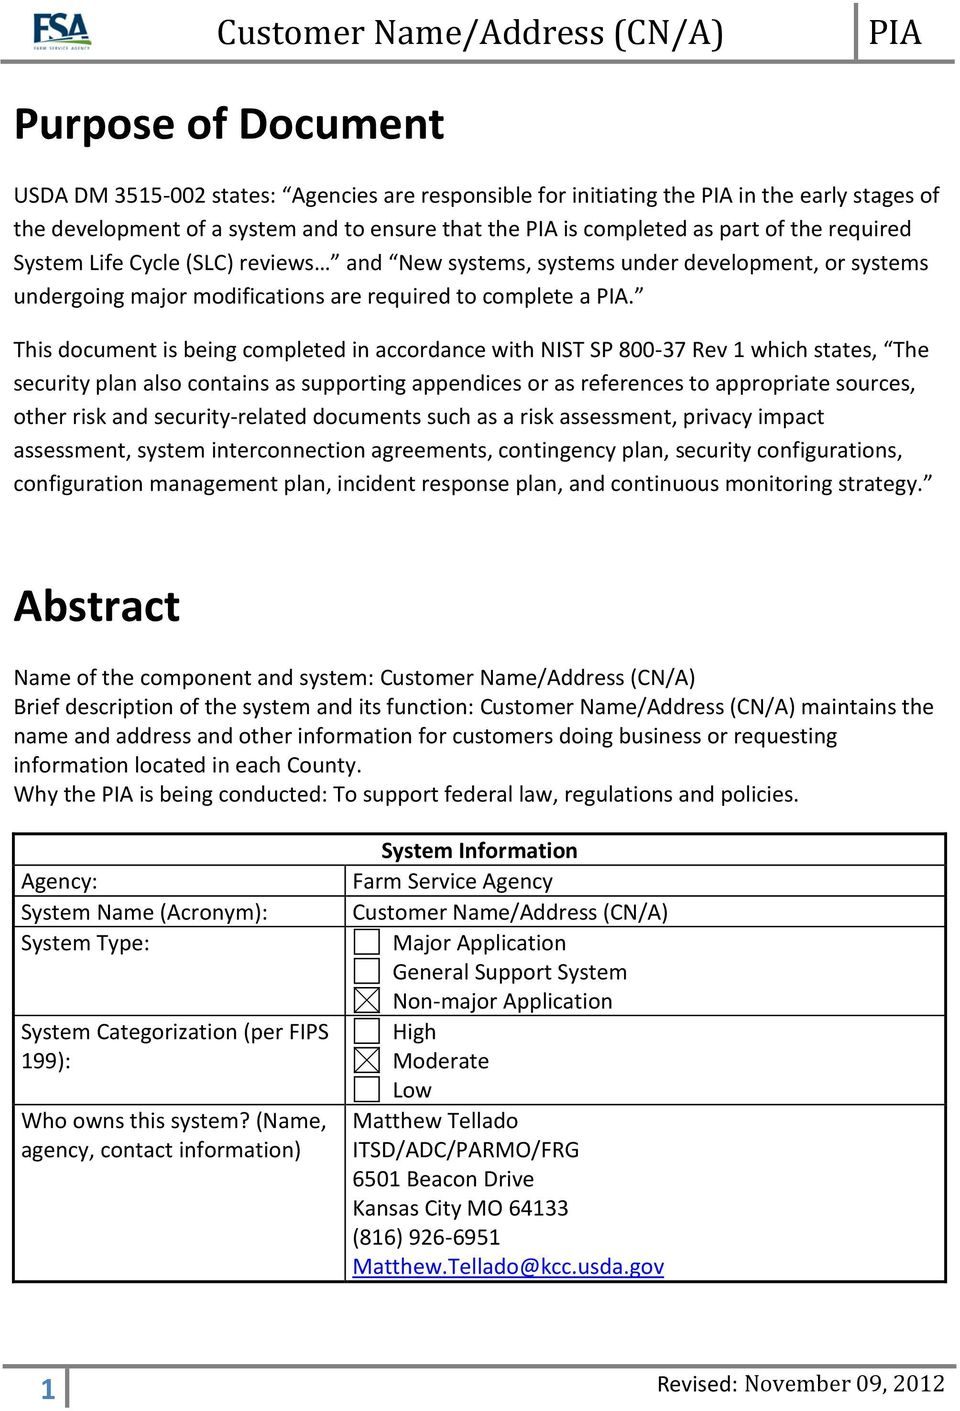 This document is being completed in accordance with NIST SP 800-37 Rev 1 which states, The security plan also contains as supporting appendices or as references to appropriate sources, other risk and